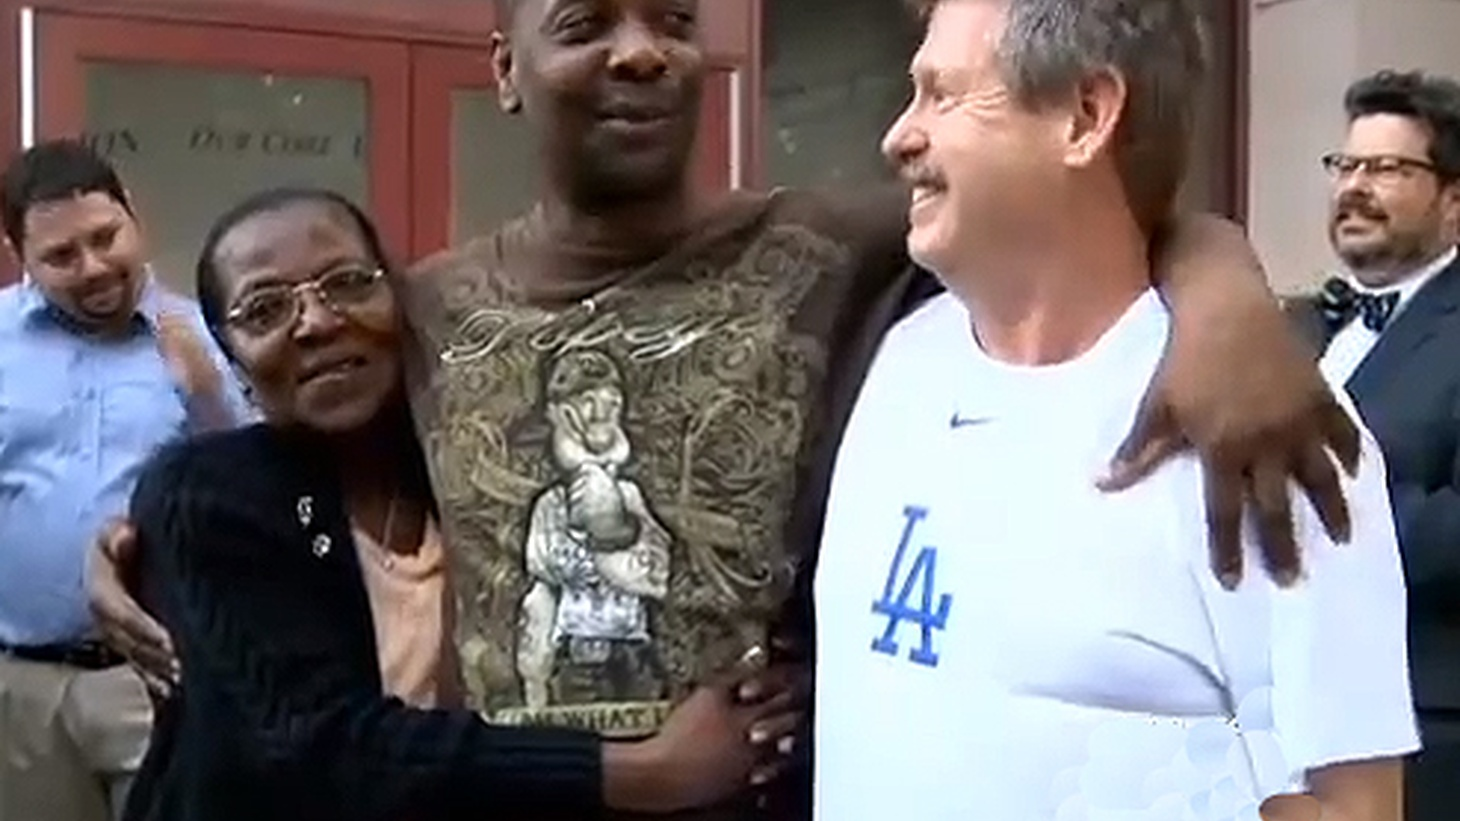 The City of Los Angeles will pay $24 million for the wrongful murder convictions of two men who spent years of their lives in prison because of proven misconduct by the LAPD. The City Attorney says going to court would cost even more.